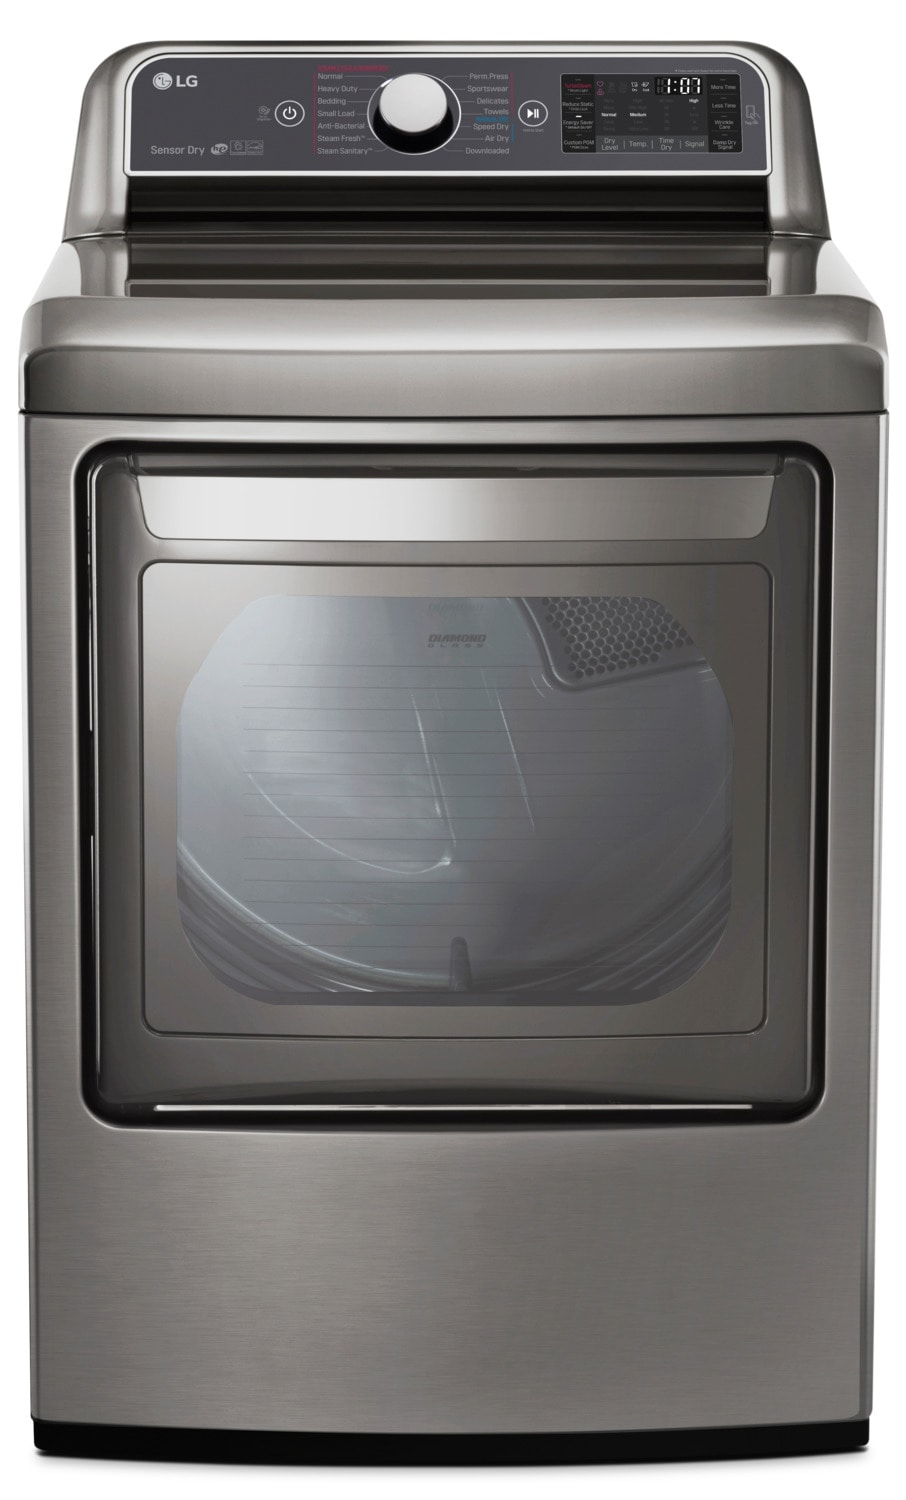 LG 7.3 Cu. Ft. TurboSteam™ Electric Dryer with EasyLoad - DLEX7600VE